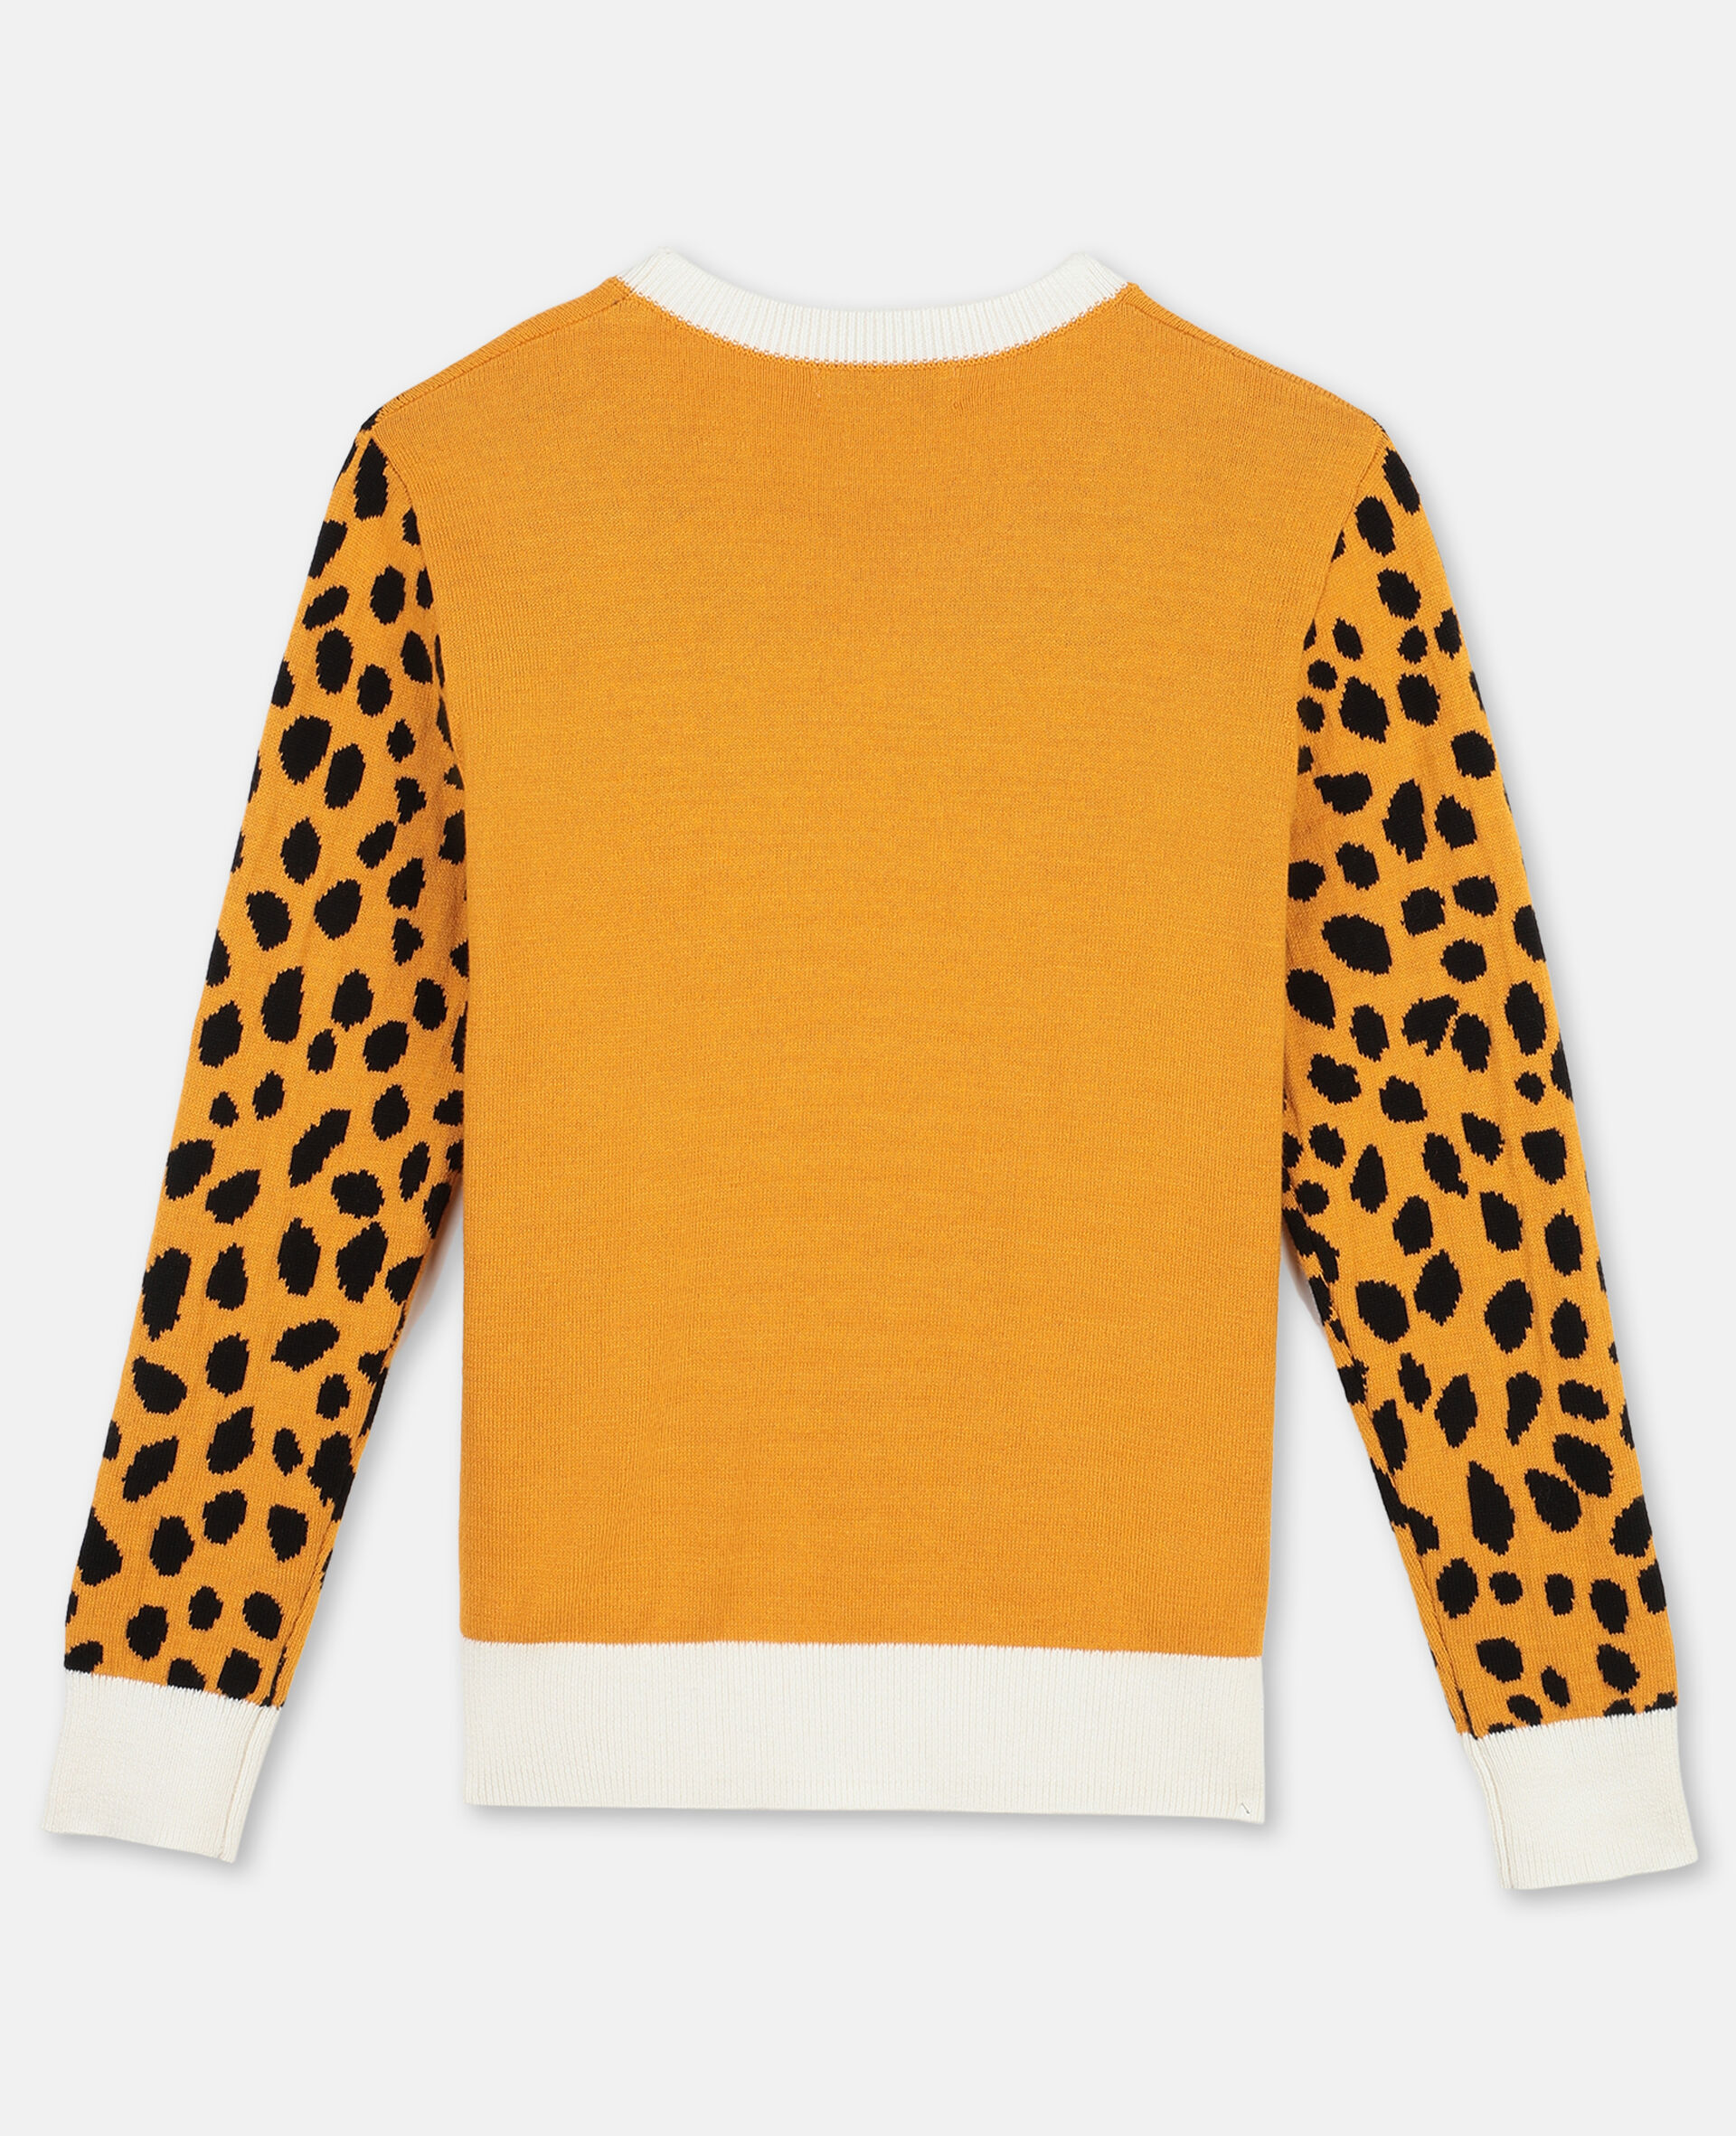 Cheetah Intarsia Knit Jumper -Orange-large image number 3